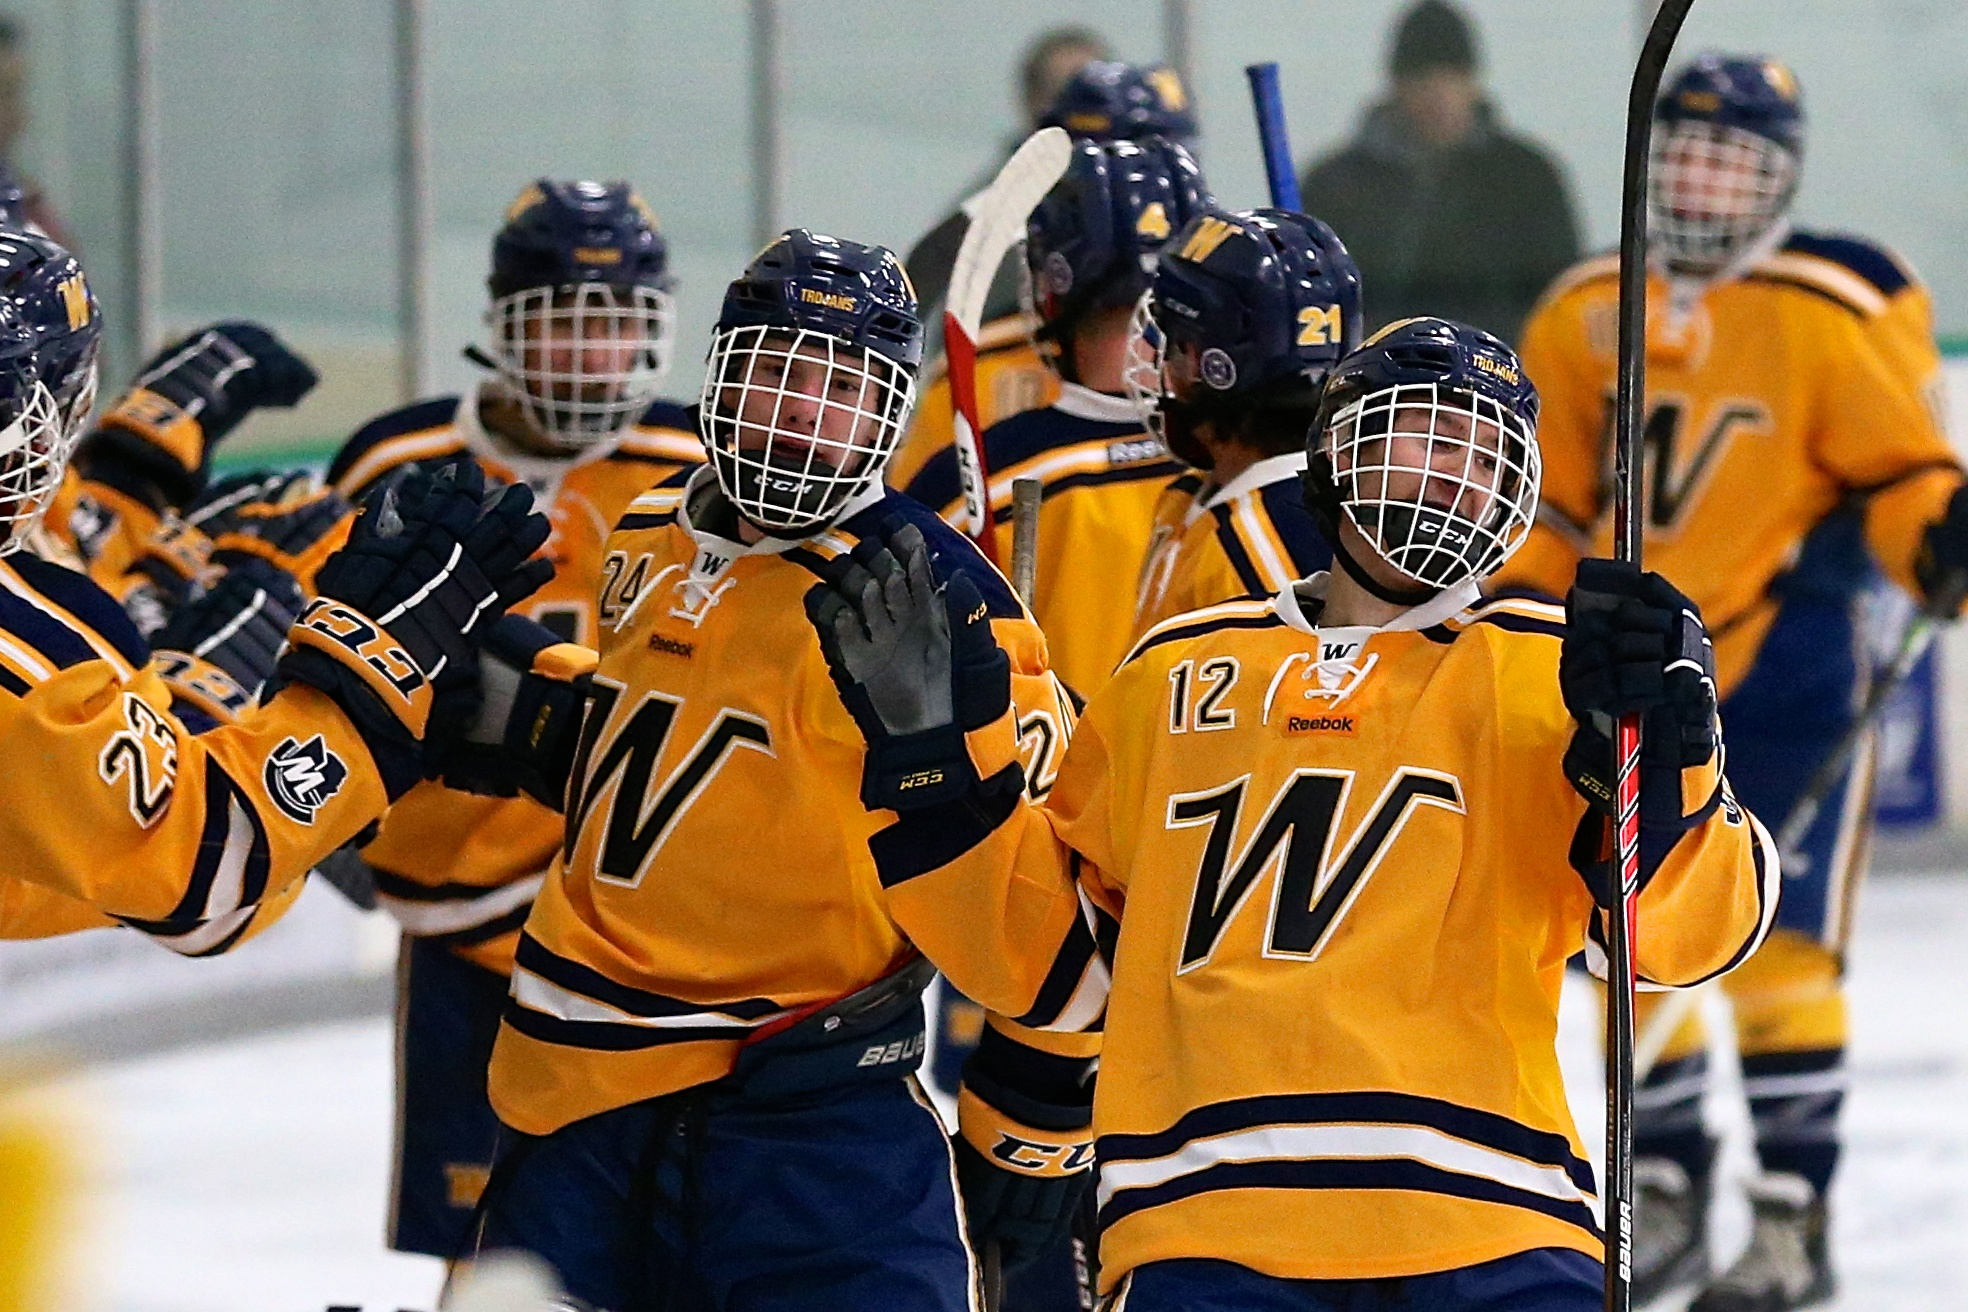 Nathan Dingmann (12) and Jake Moelk (24) lead the line of Trojans as they high five the bench players in Wayzata's 1-1 tie with Edina in the Turkey Trot Tournament at the Plymouth Ice Arena Nov. 22. Photo by Brian Nelson